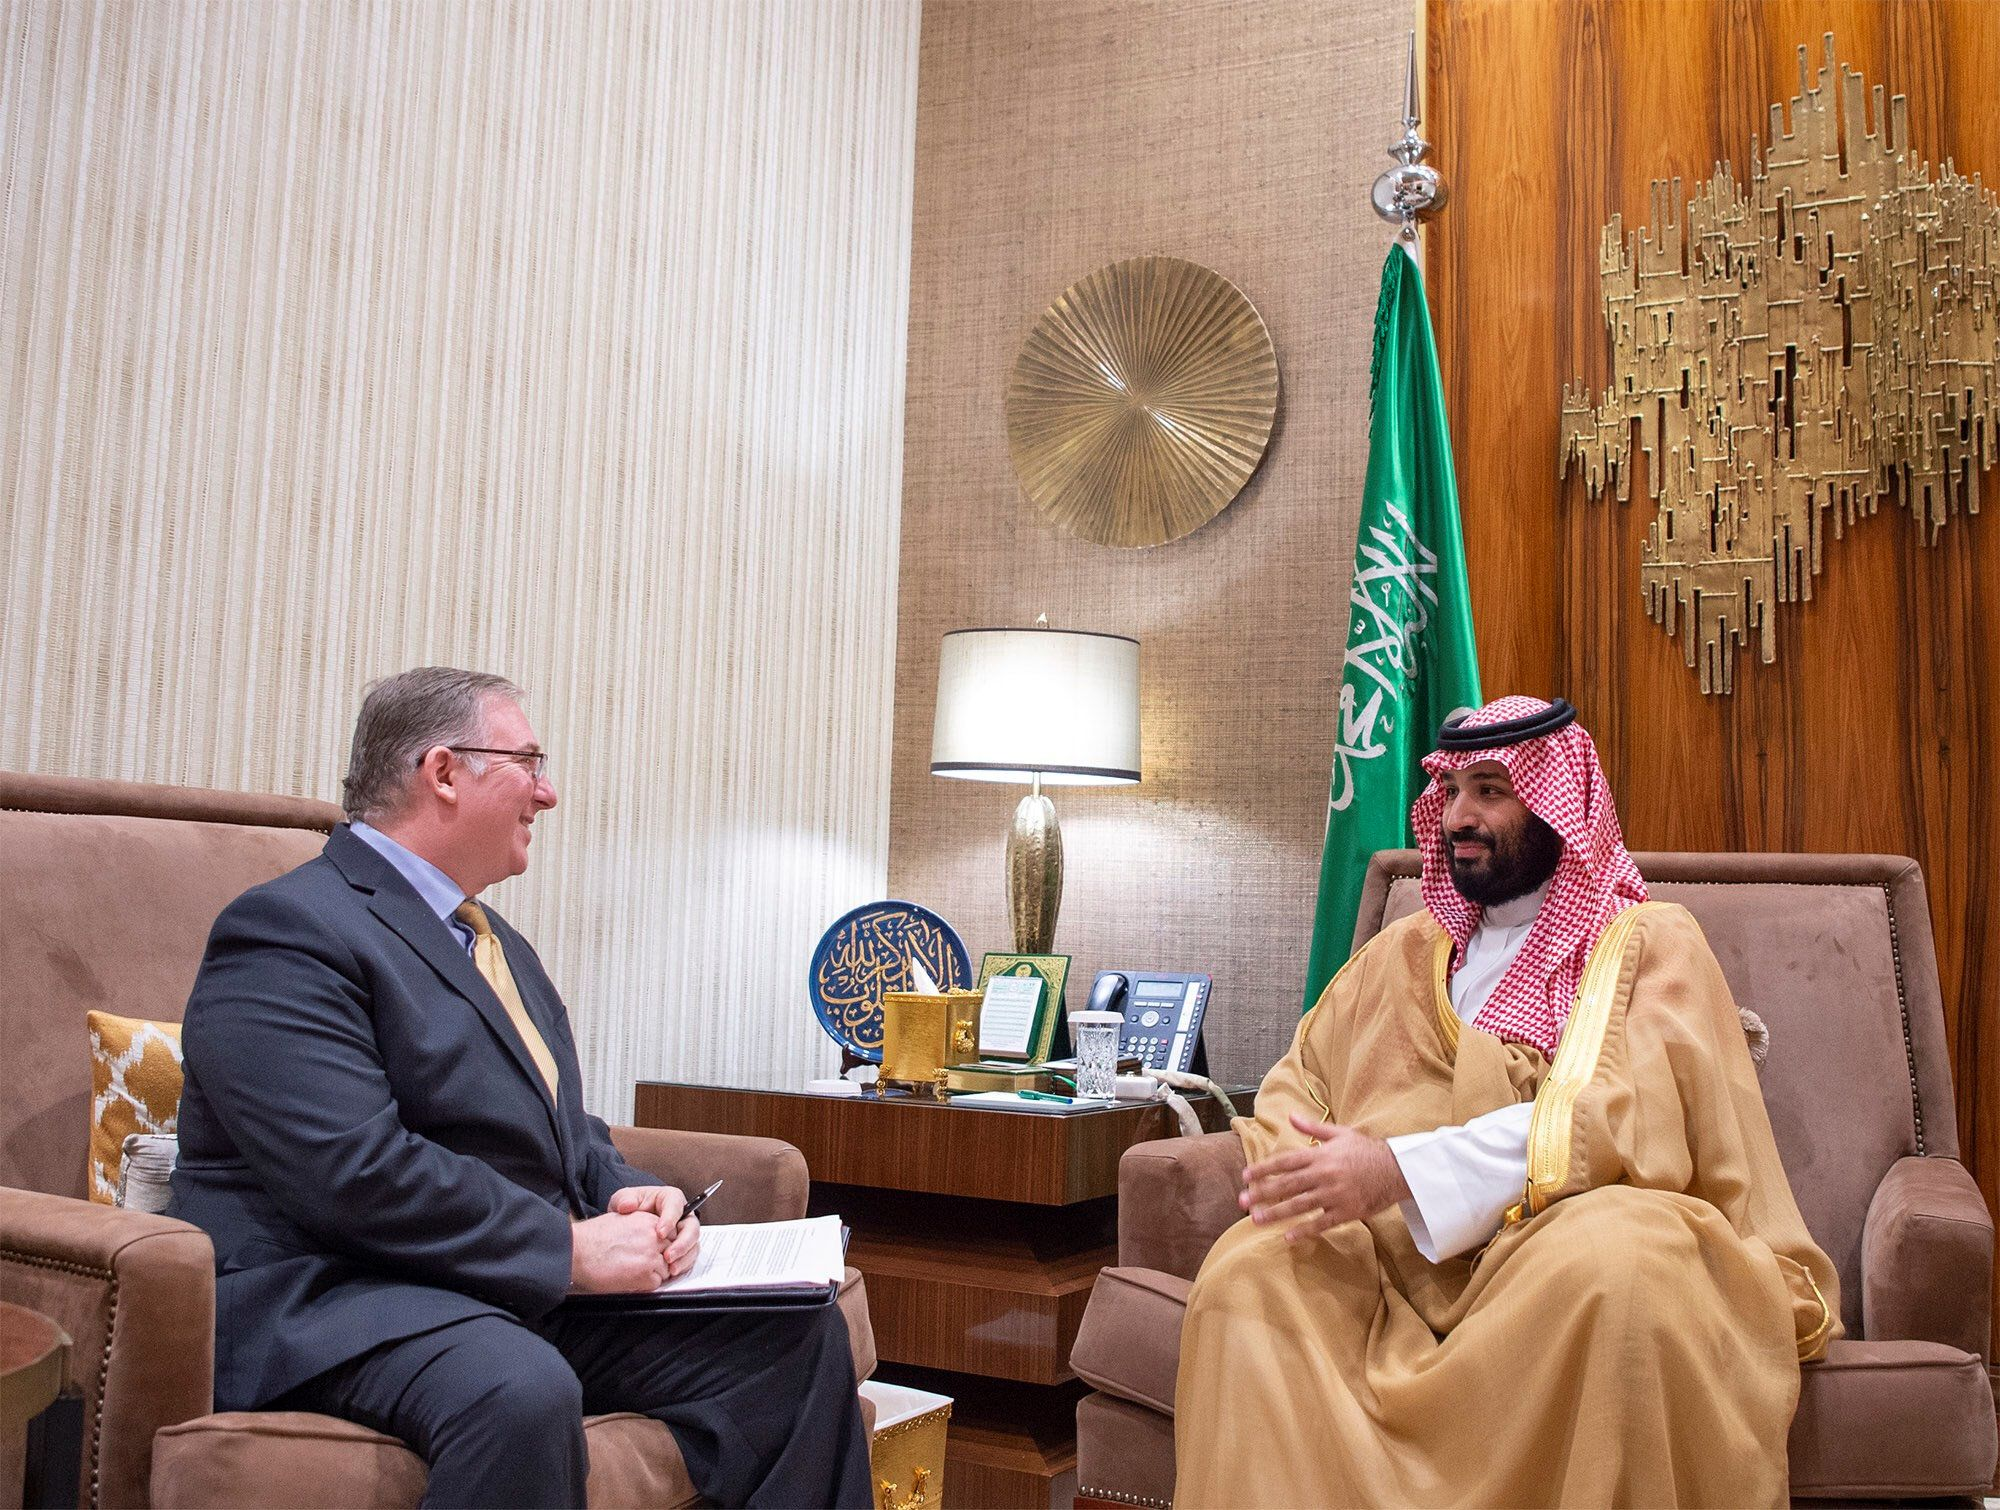 Saudi Crown Prince Mohammed bin Salmanin meets with a member of the delegation of American Evangelical Christian Leaders in Riyadh, Saudi Arabia November 1, 2018. Bandar Algaloud/Courtesy of Saudi Royal Court/Handout via REUTERS ATTENTION EDITORS - THIS PICTURE WAS PROVIDED BY A THIRD PARTY.